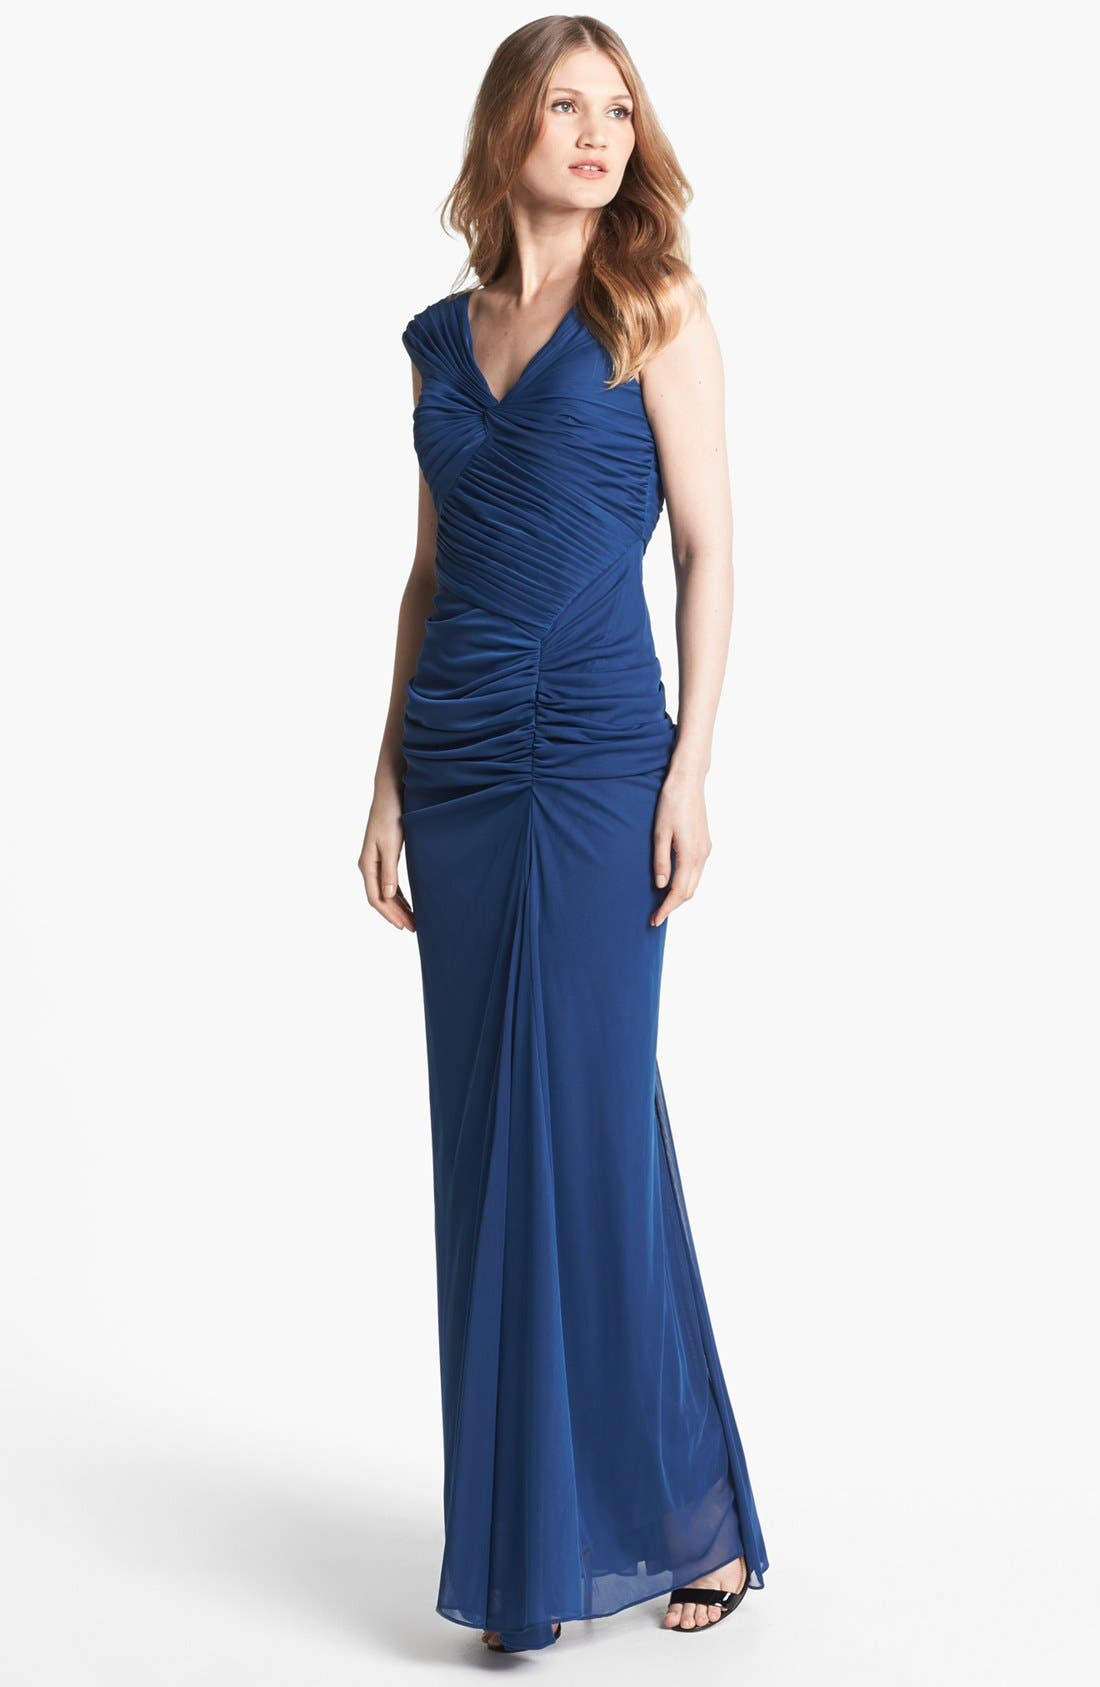 Alternate Image 1 Selected - Adrianna Papell Front Twist Ruched Mesh Gown (Regular & Petite)